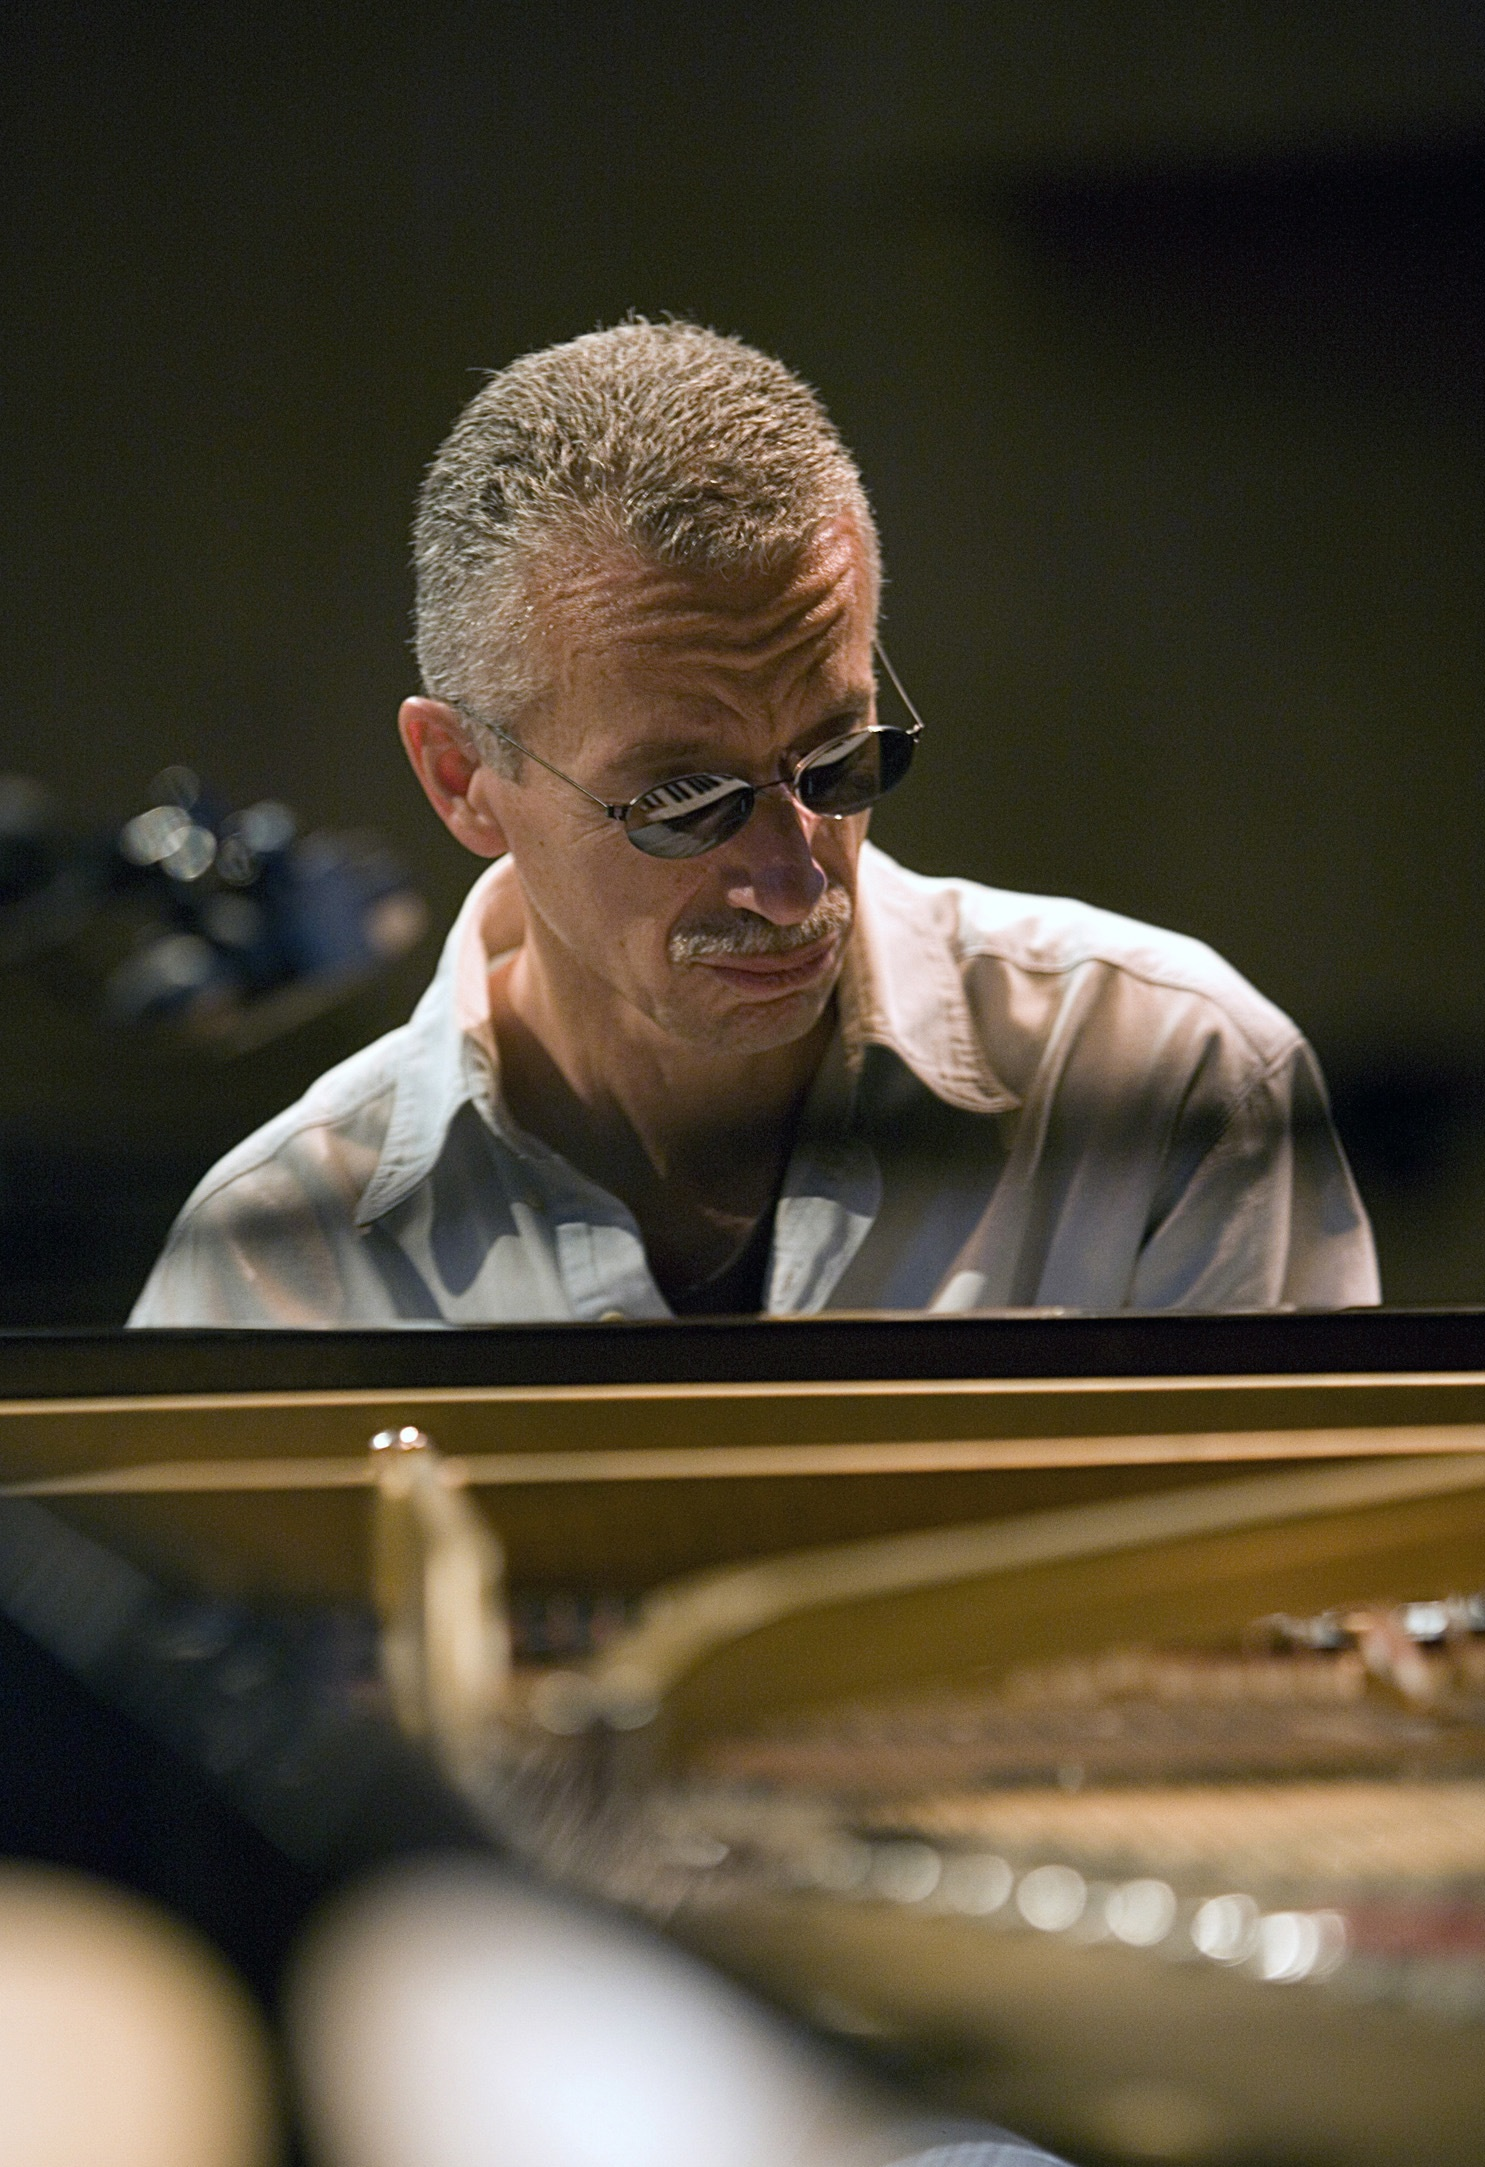 Caption: Keith Jarrett, Credit: Rose Anne Colavito